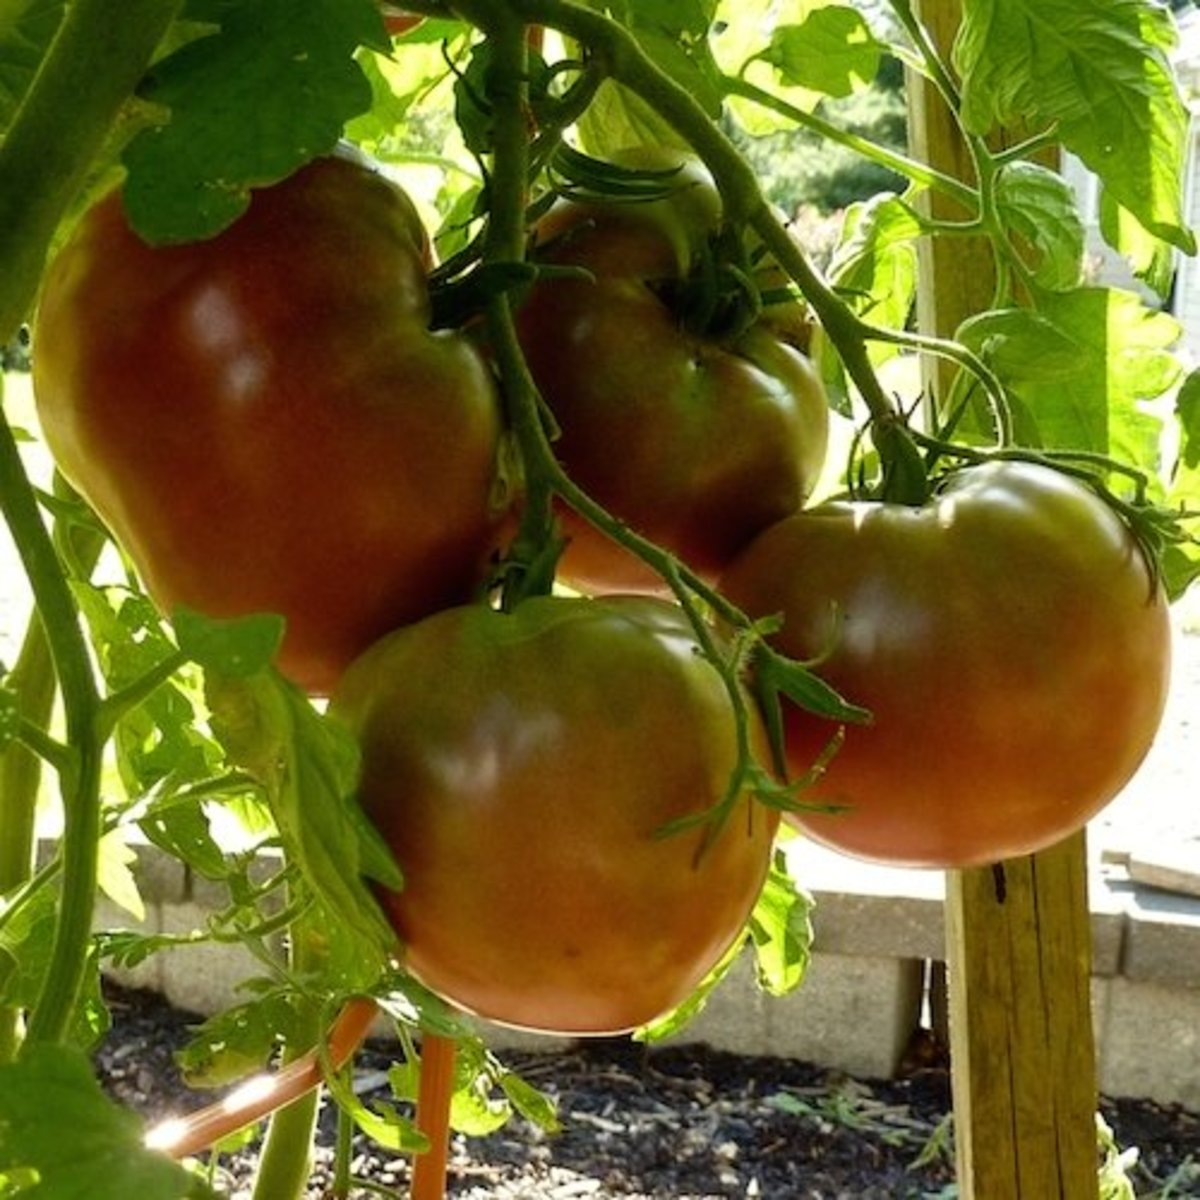 For the real giants, you must thin the tomatoes. So, choose to grow a lot of smaller tomatoes or, grow fewer fruits to get giant tomatoes.